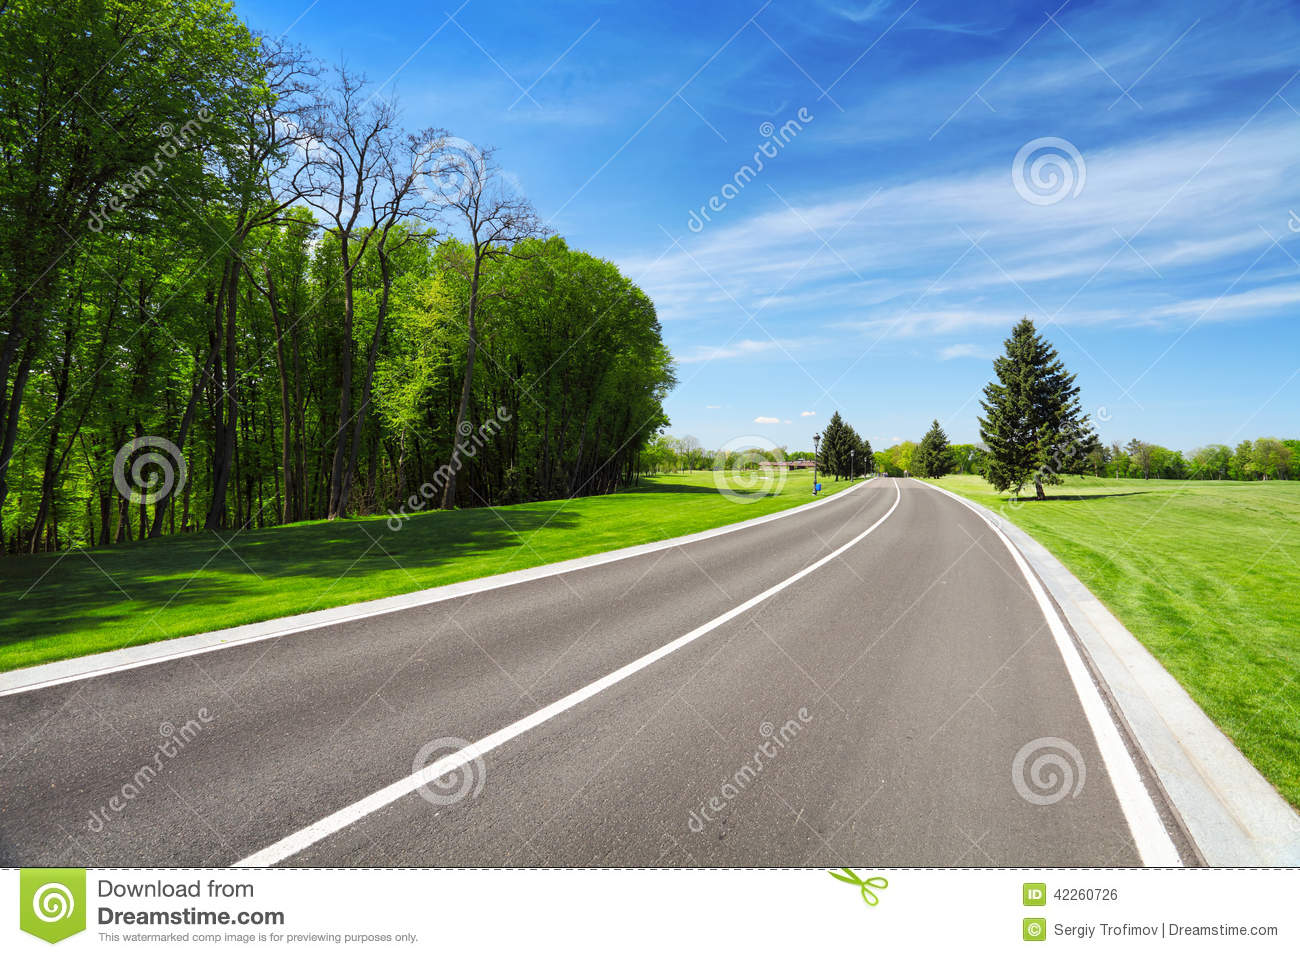 Landscaping between trees : Road between trees and grass on roadside stock photo